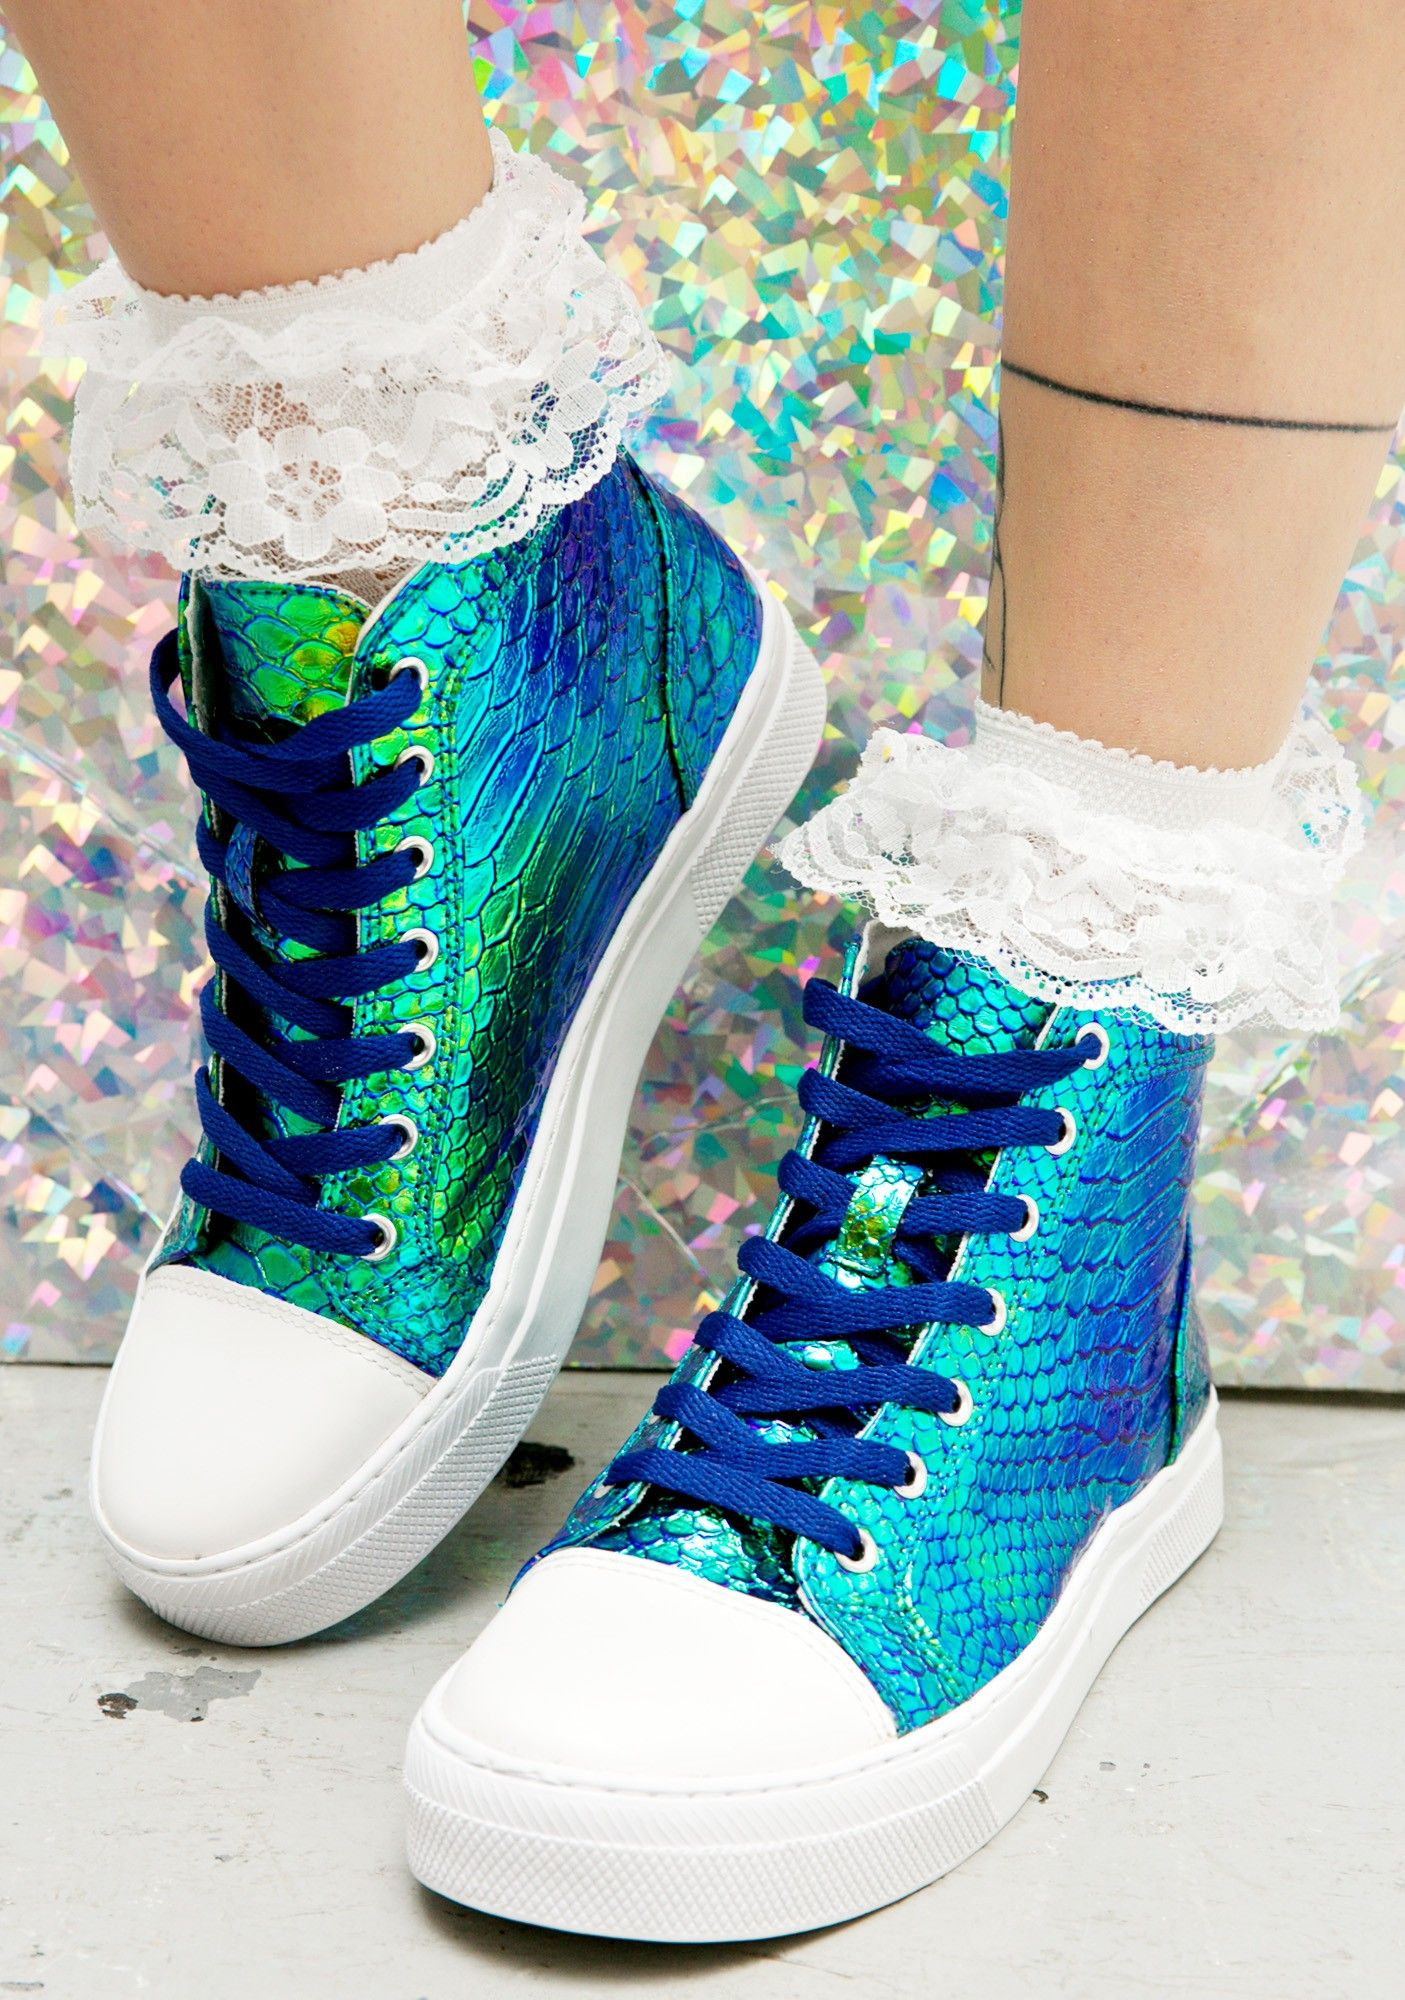 0a3f79a59fd47 Mermaid Scale High Top Sneakers  45